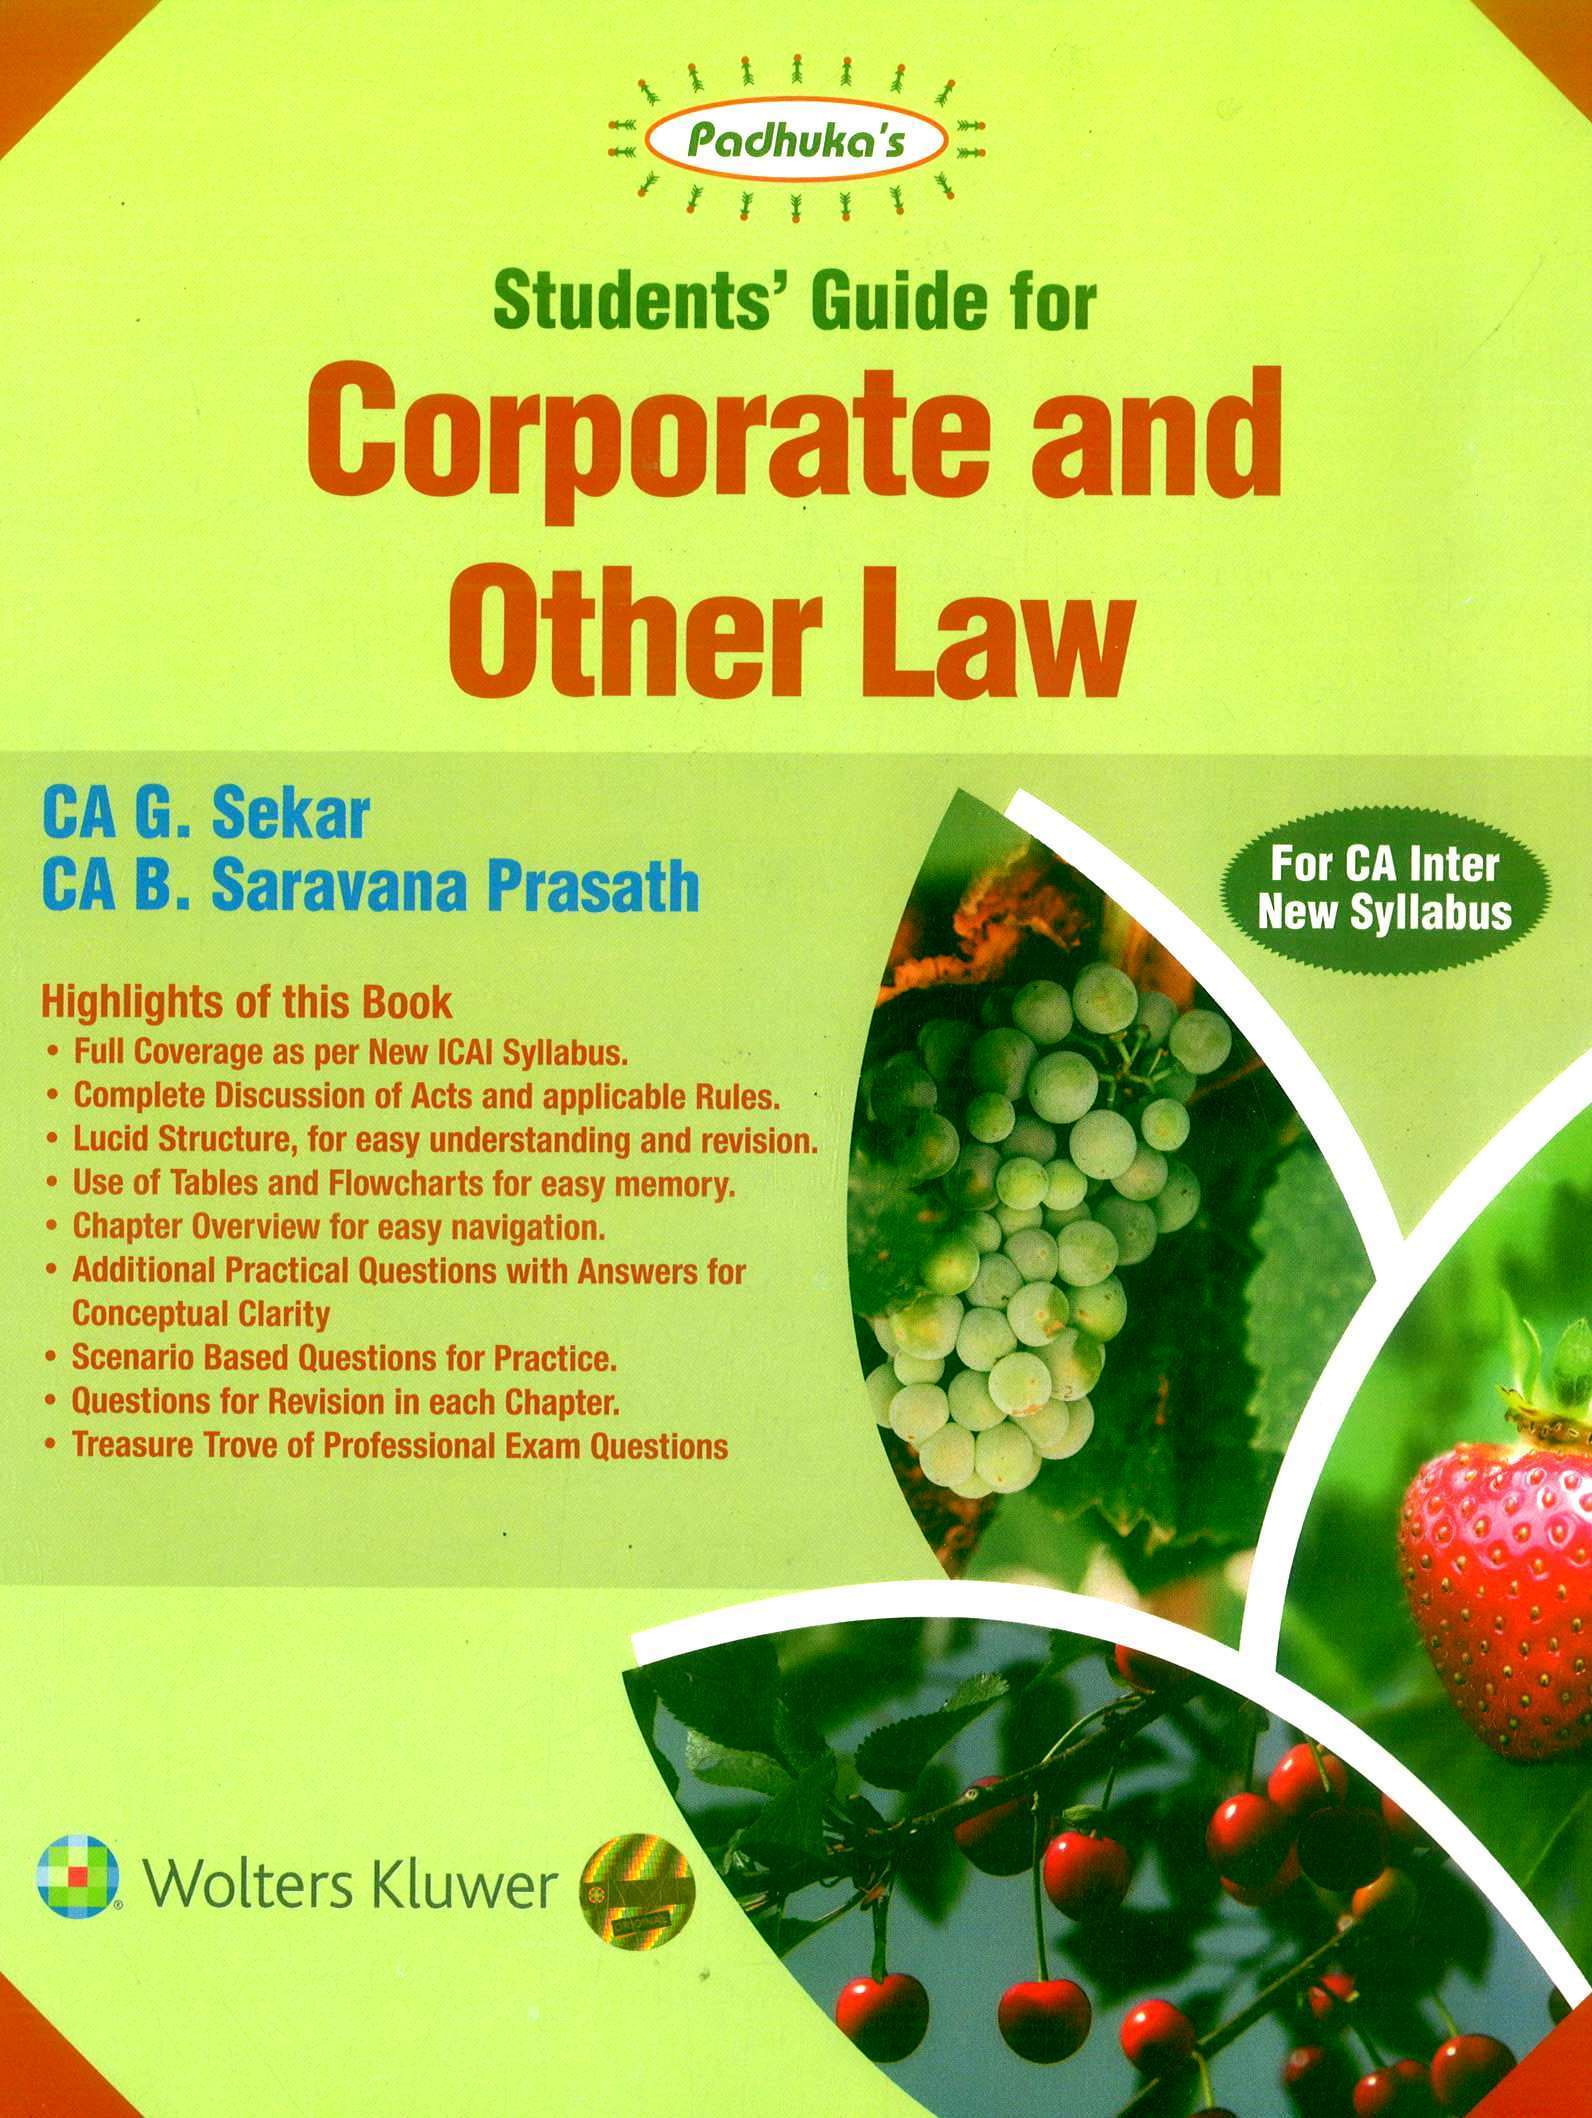 CCH Padhuka Students Guide for Corporate and Other Law CA Inter (New Syllabus) By G Sekar , B Saravana Prasath Applicable for November 2019 Exam